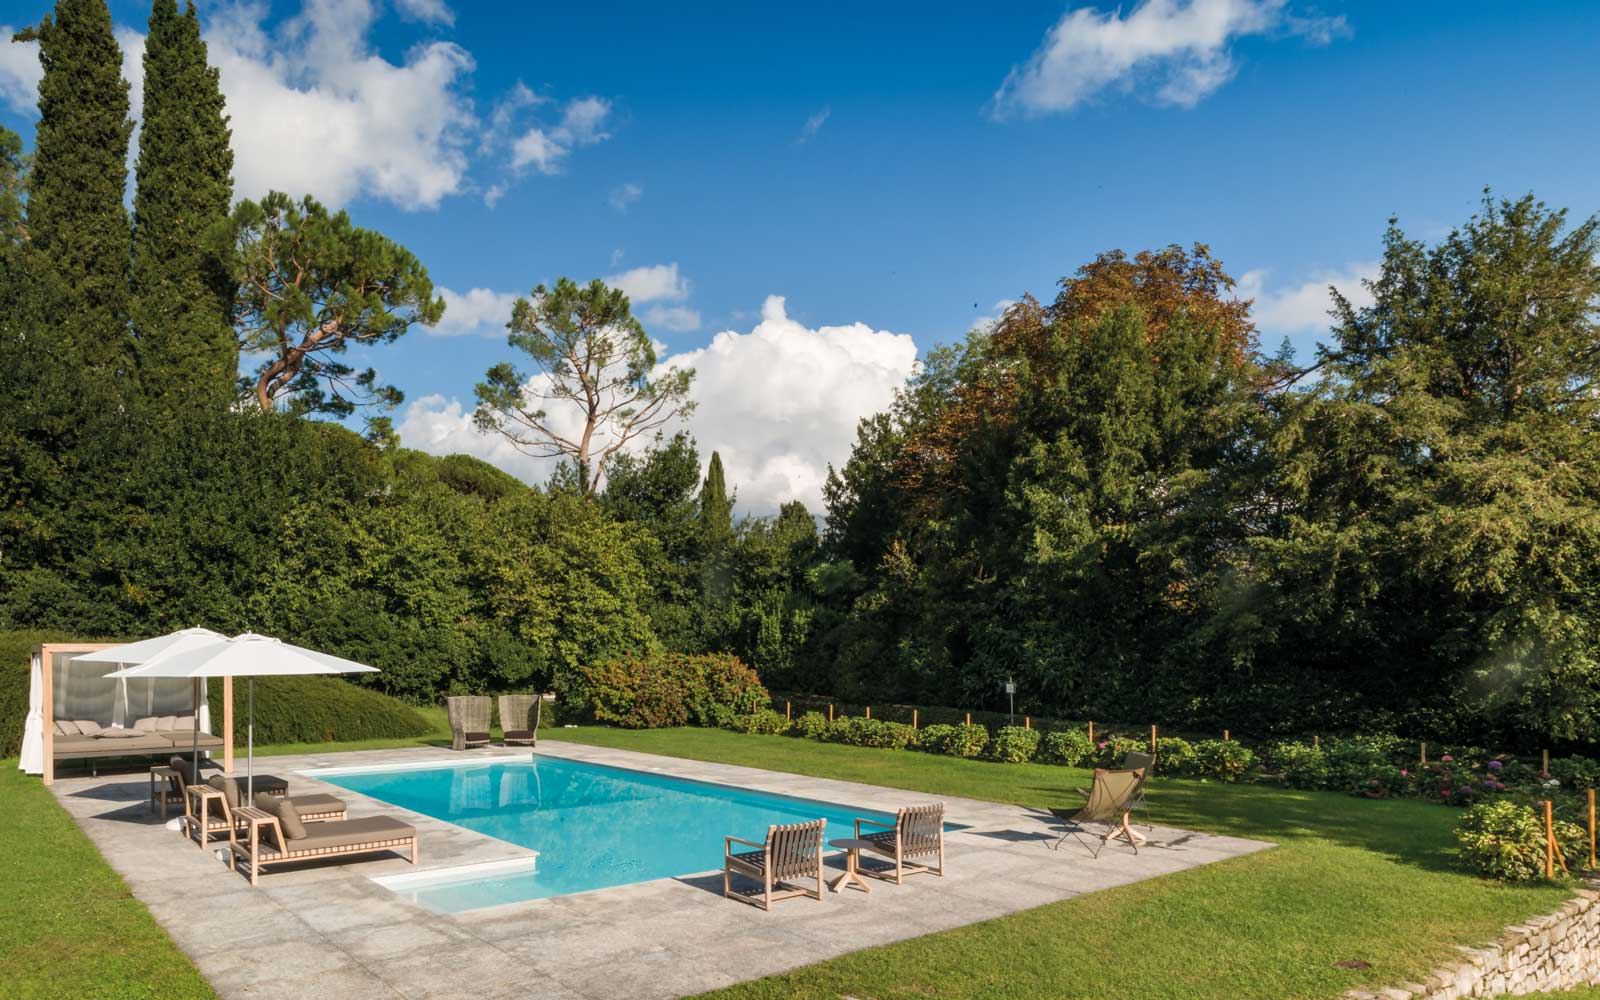 View of the pool at the Villa Sola Cabiati, on Lake Como, Italy